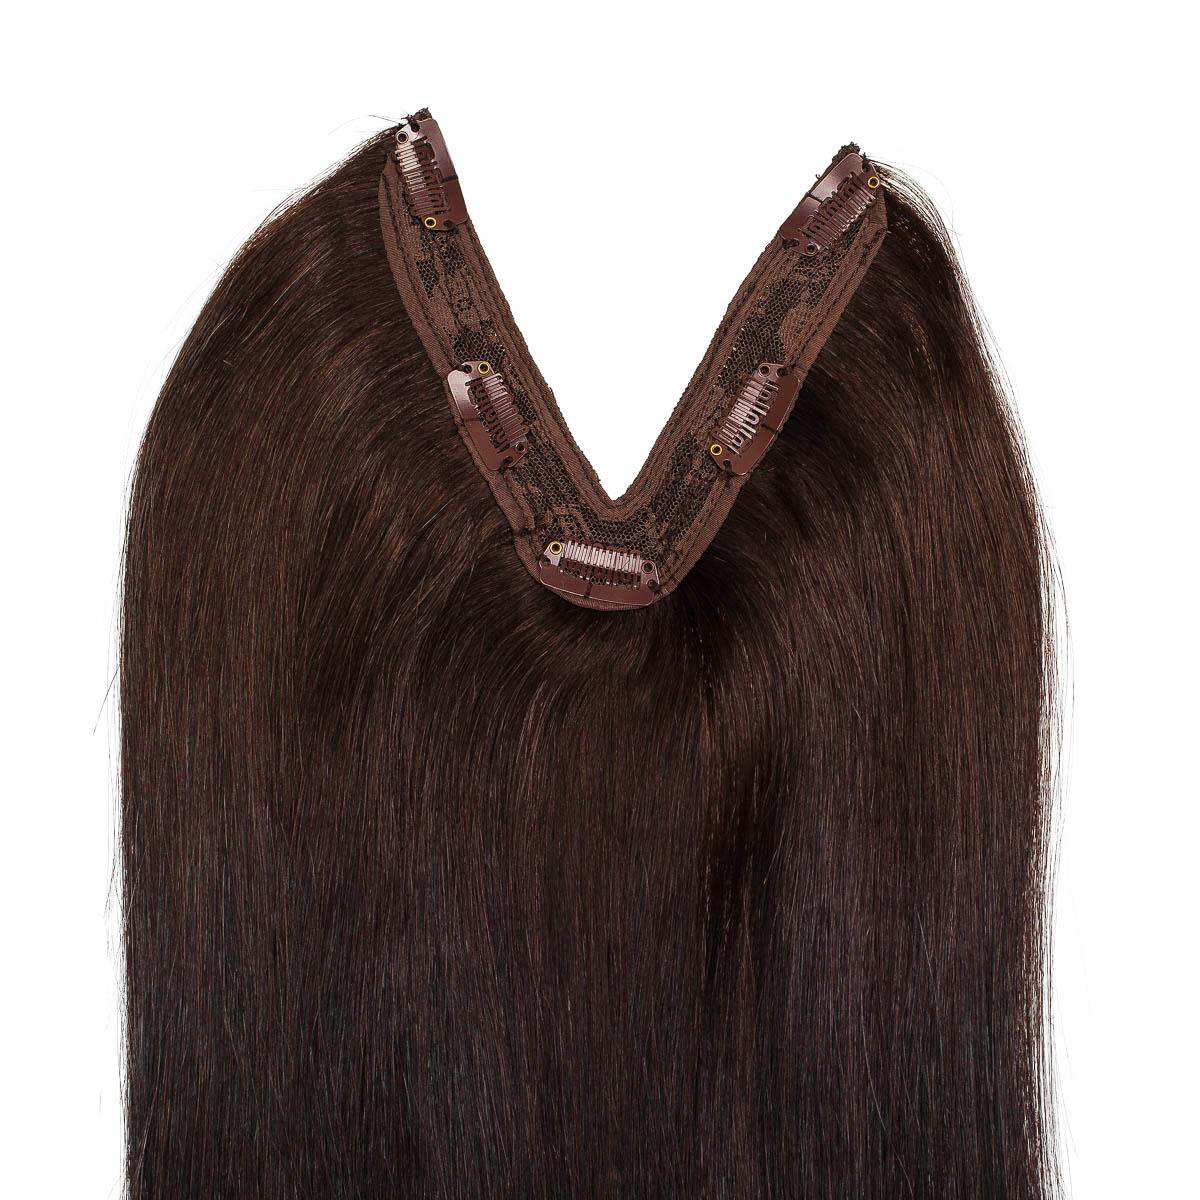 Easy Clip-in 2.3 Chocolate Brown 50 cm